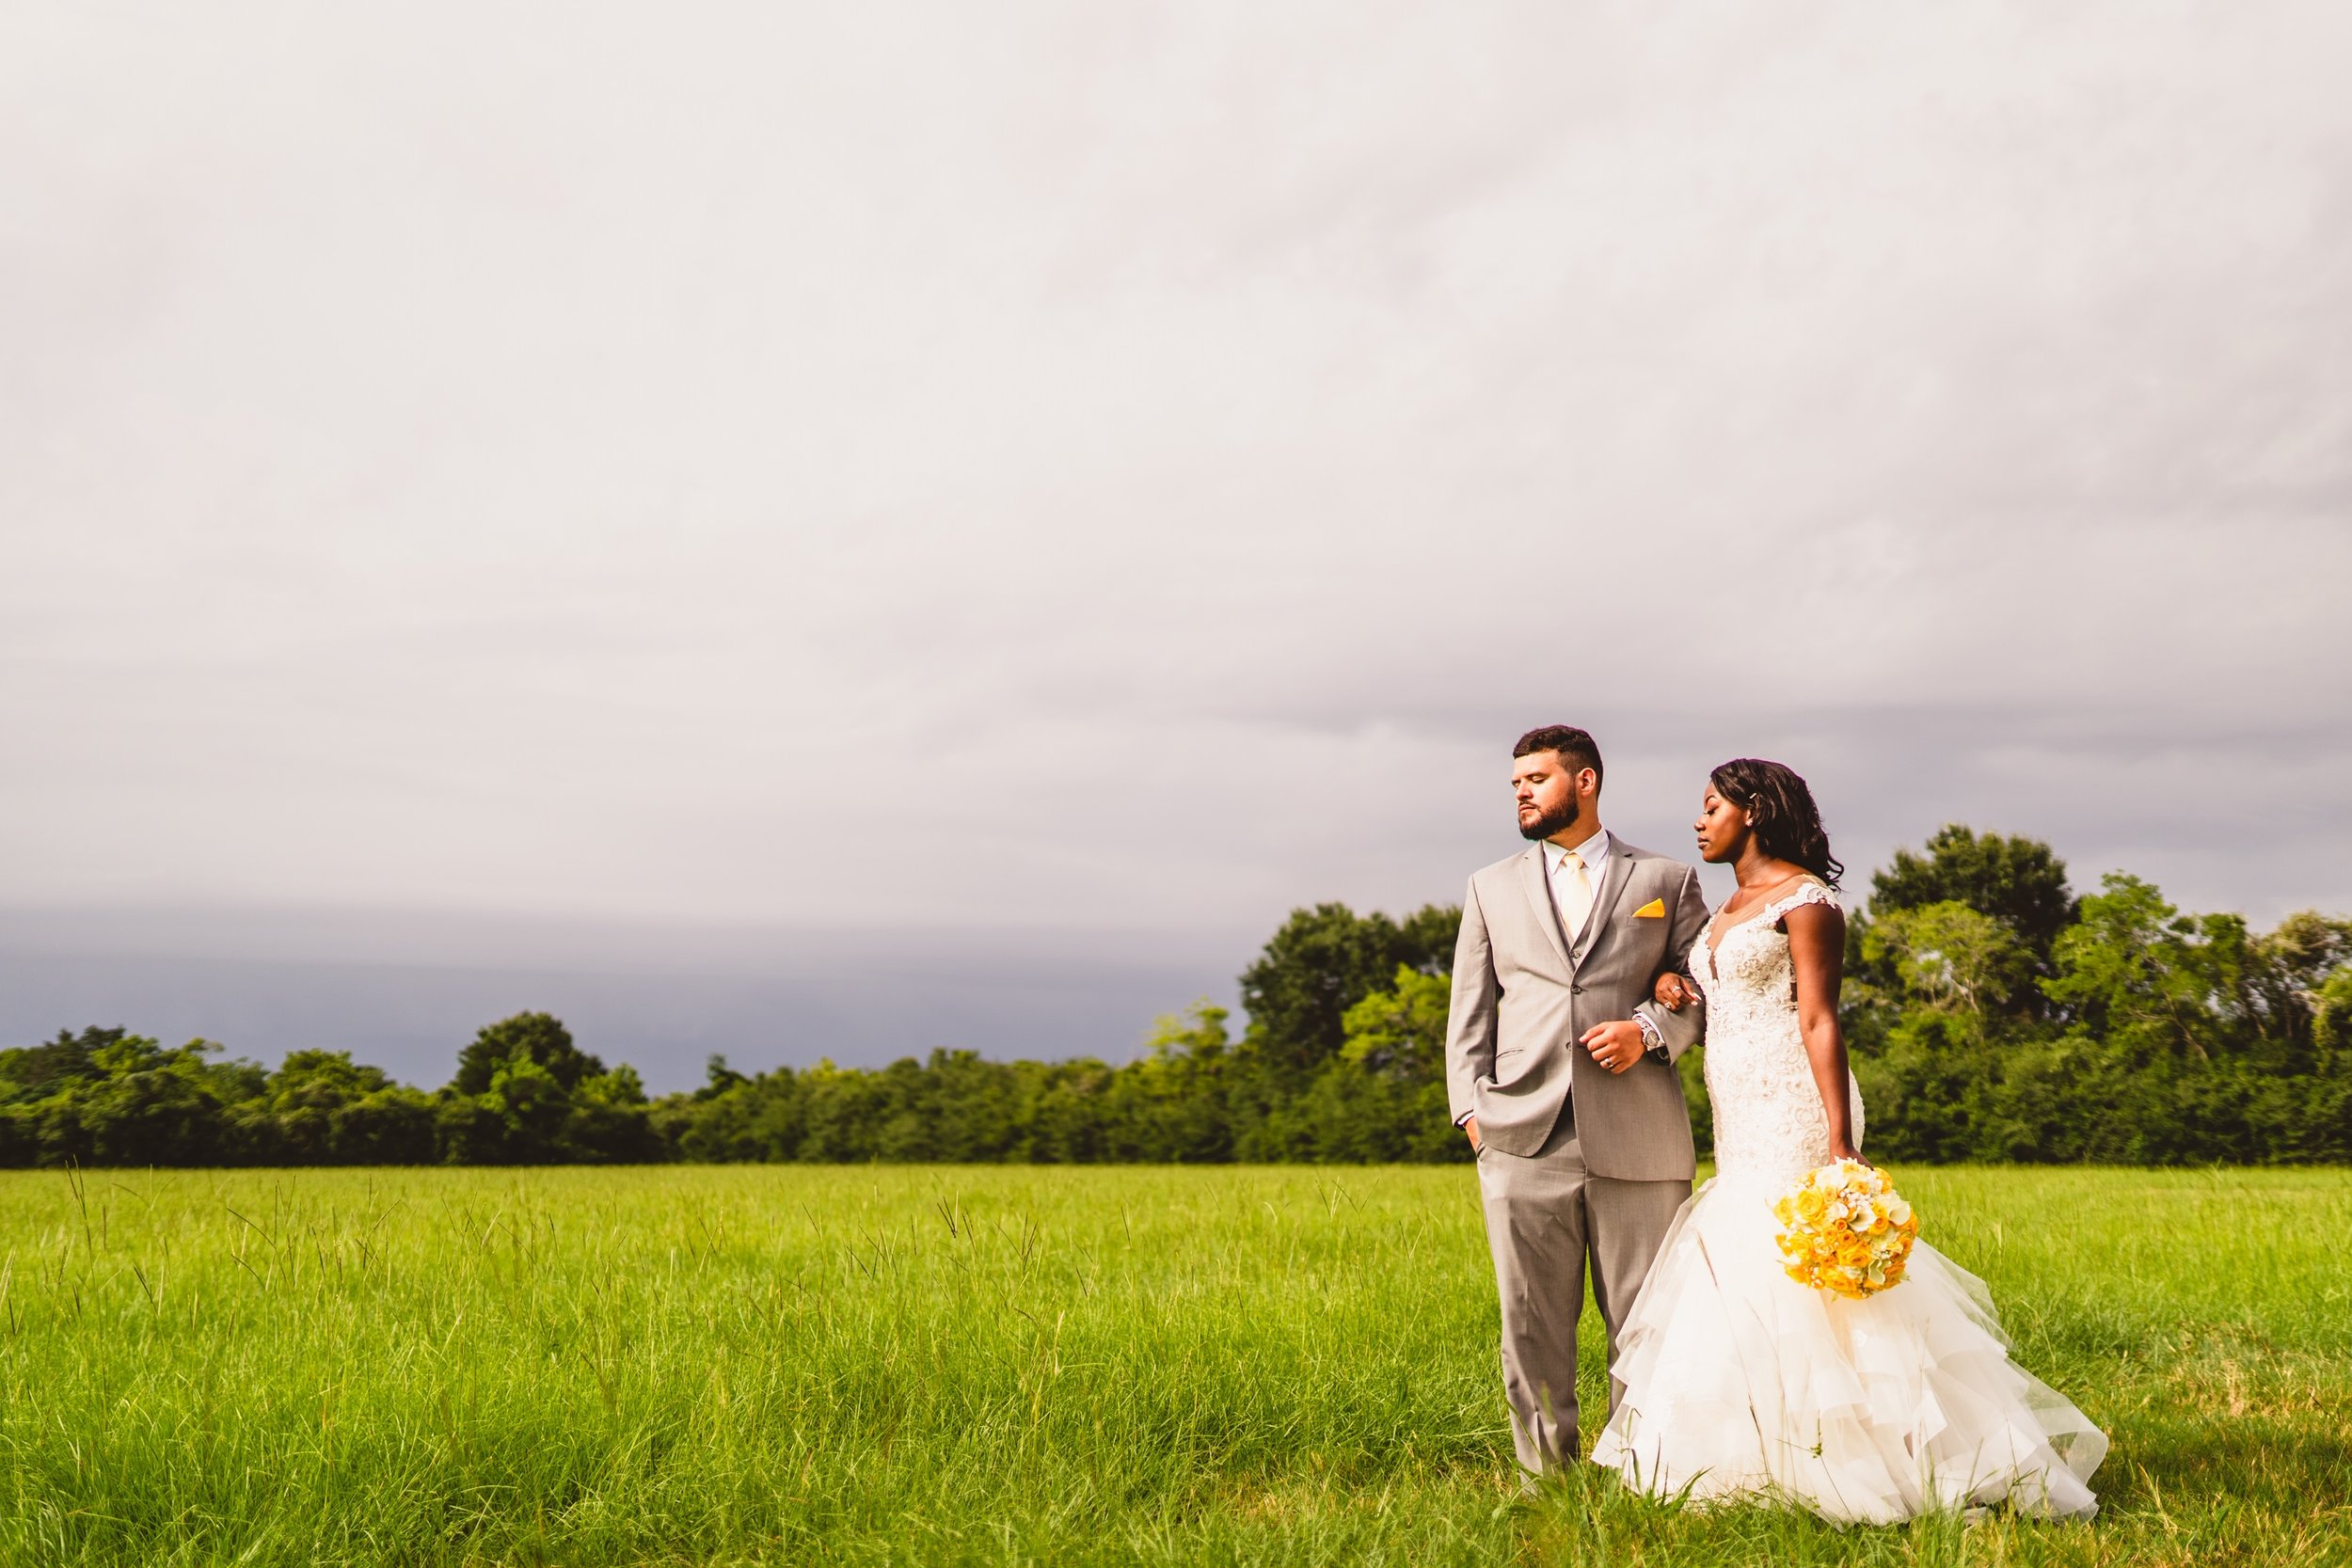 Houston-Wedding-photographer-photographers-photography-moffit-oaks-venue-best-top-vendors-in-make-up-bridal-floral-married-pictures-creative-travel-texas-tx.JPG